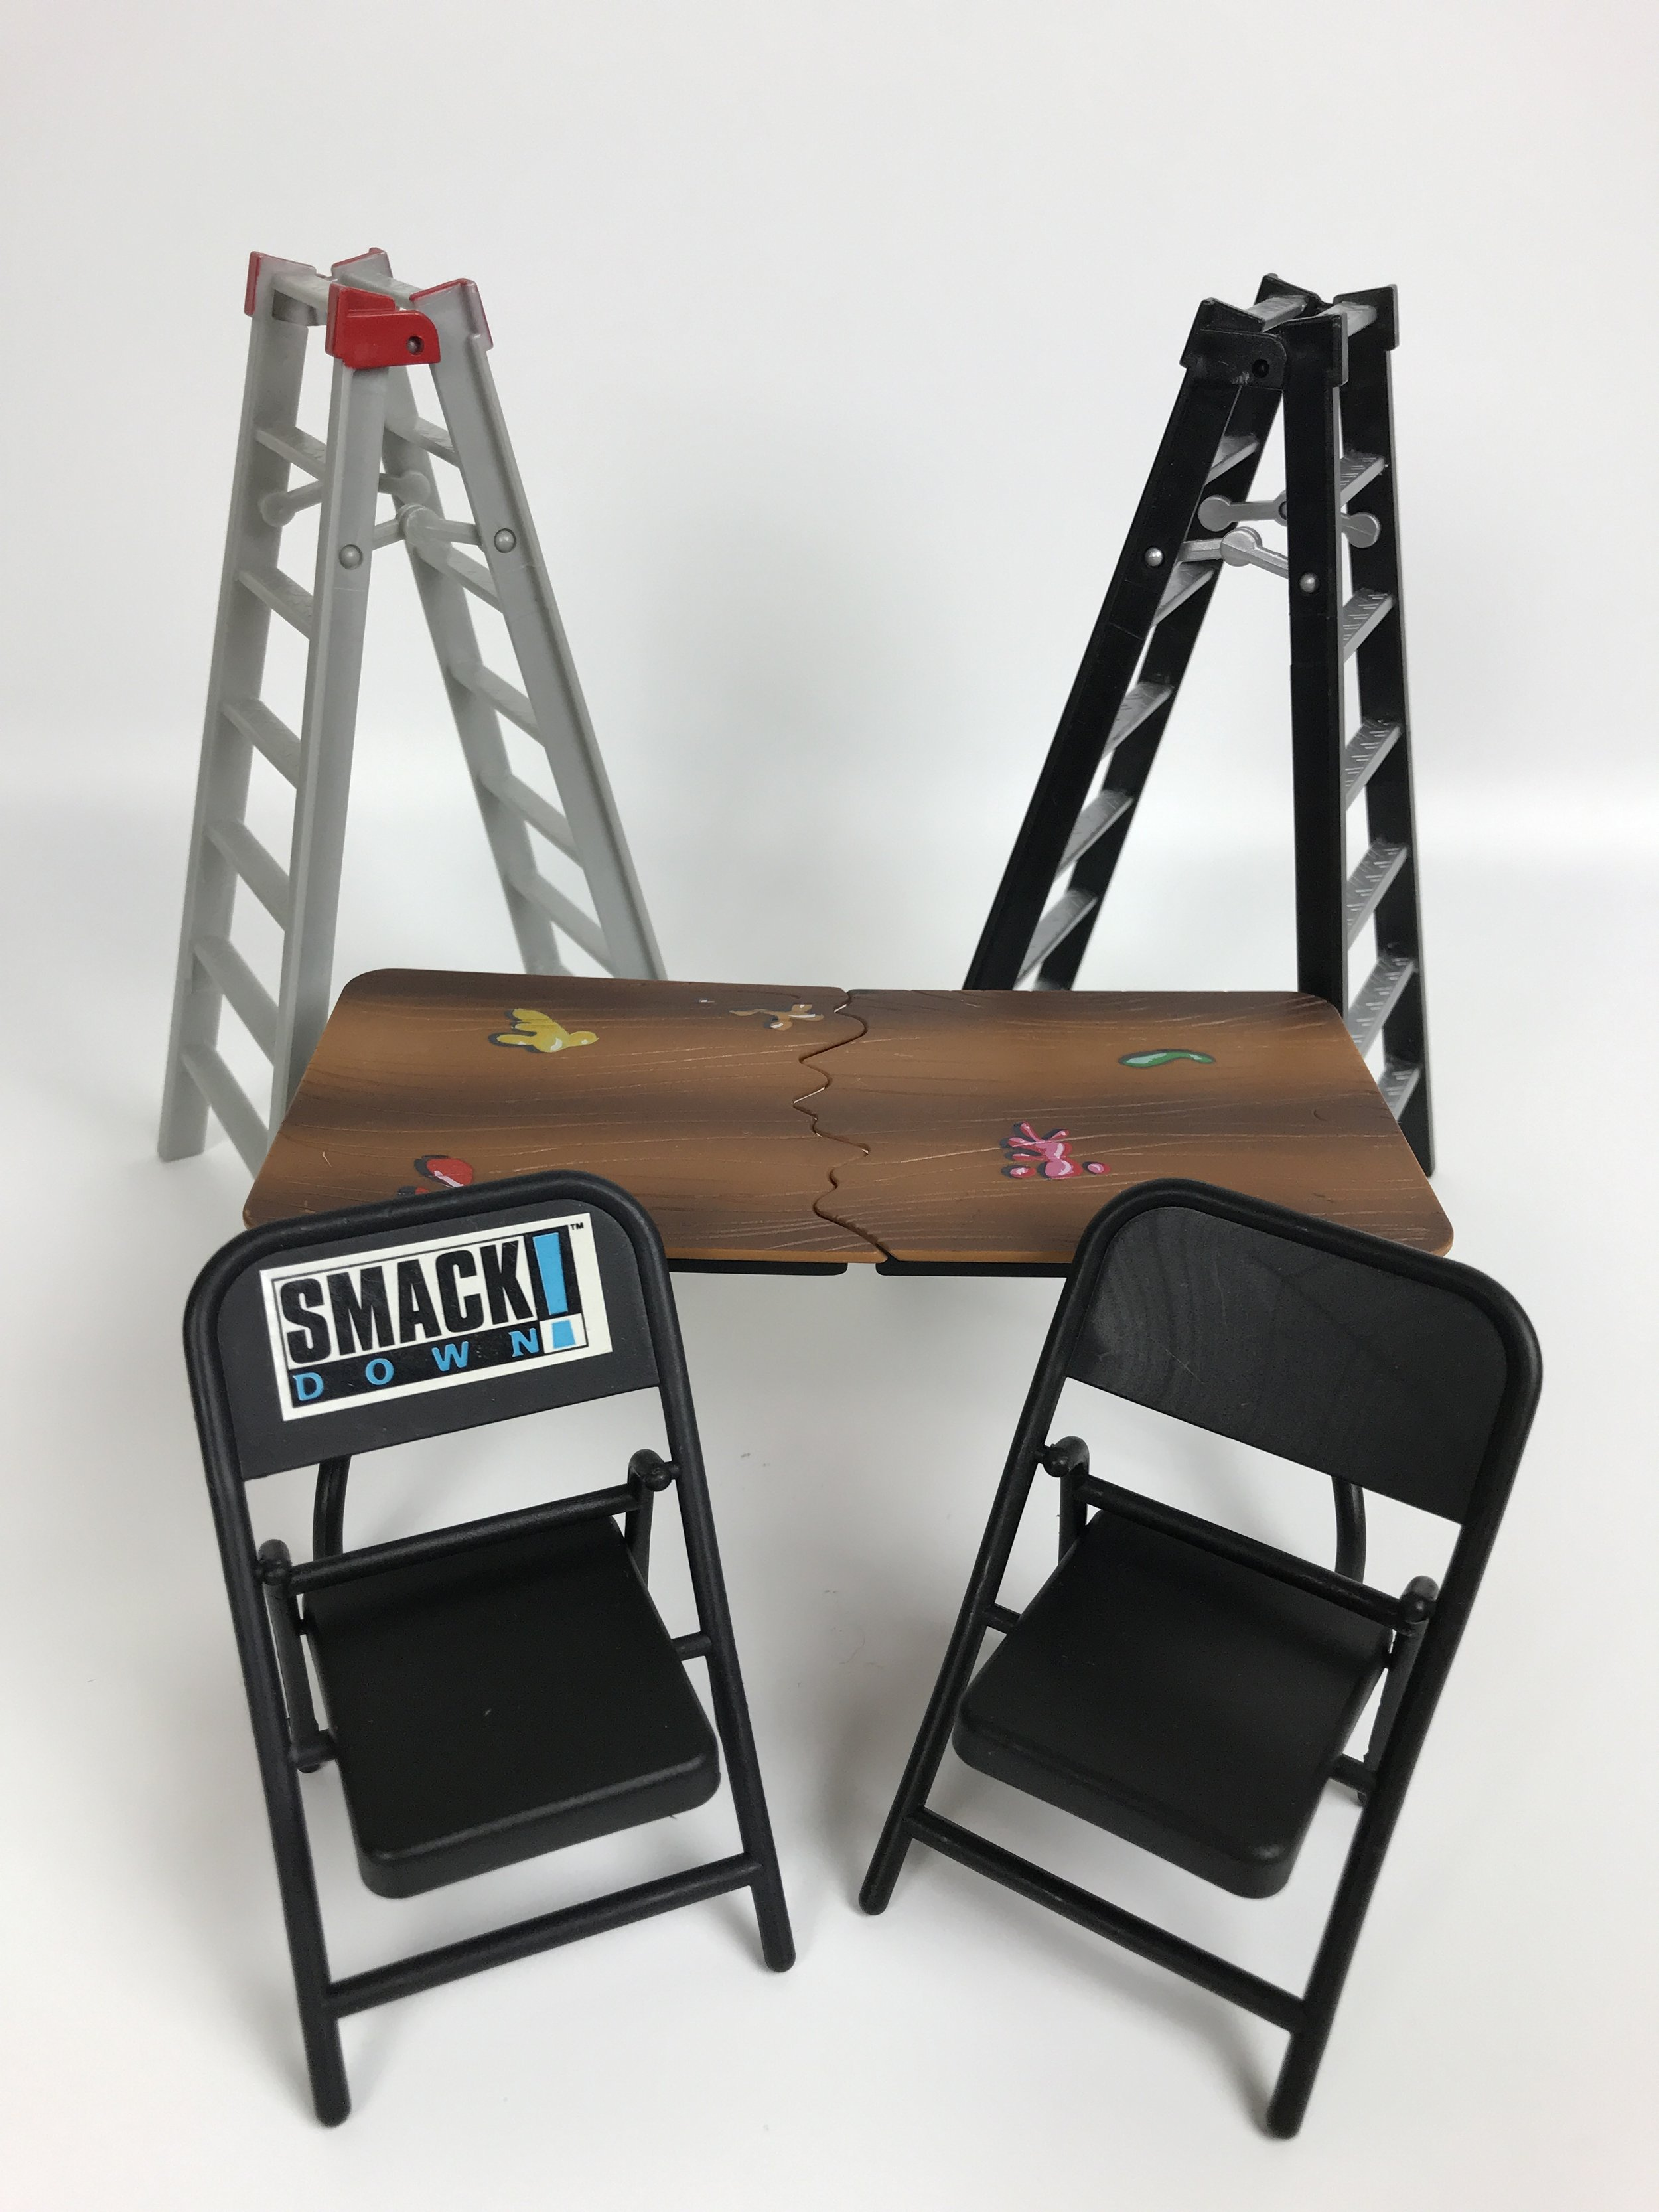 WWE table, ladders, and chairs